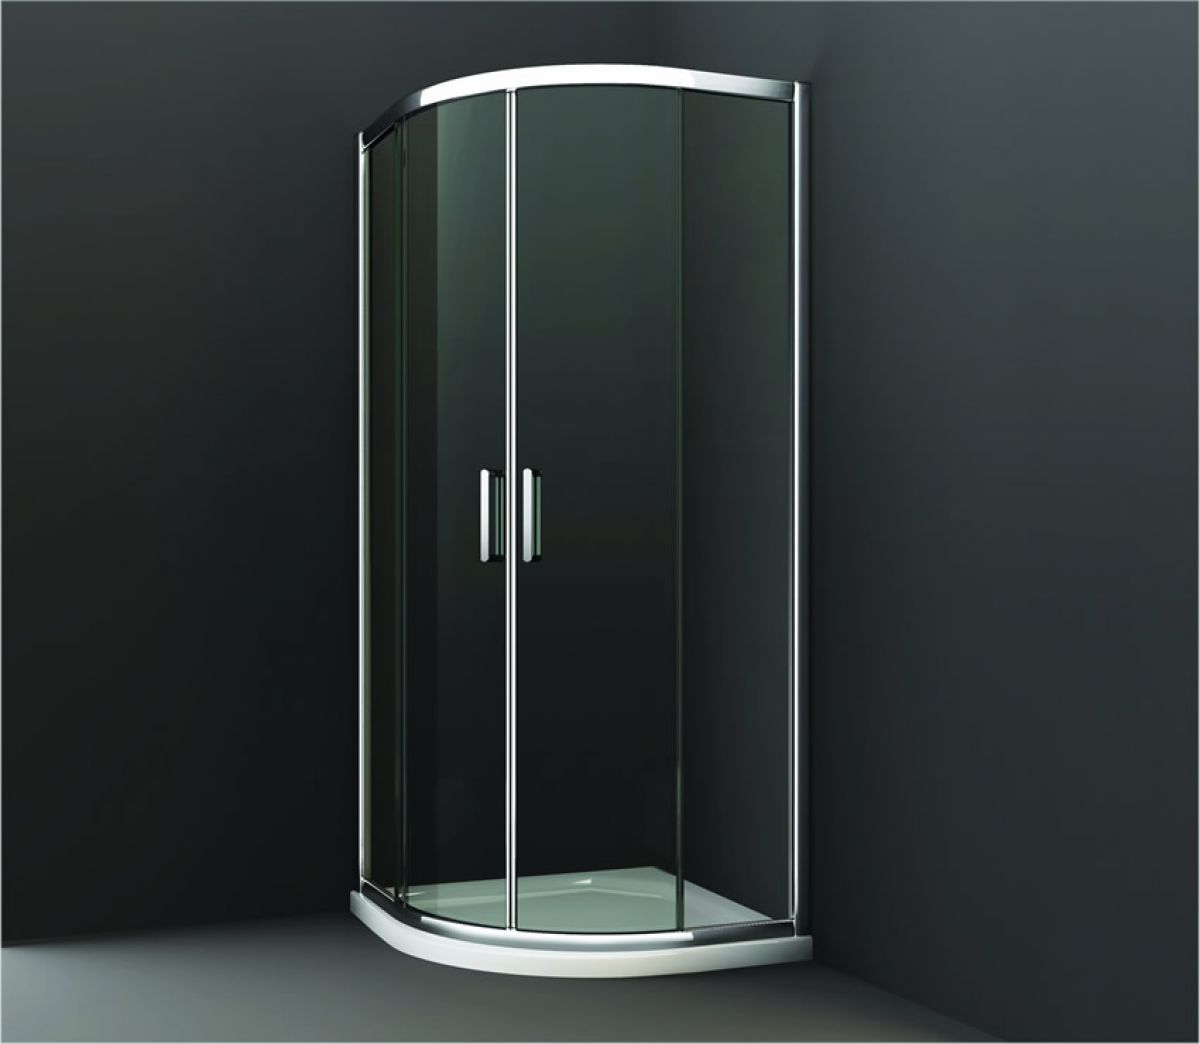 Merlyn series 8 twin door quadrant shower enclosure uk for Door quadrant